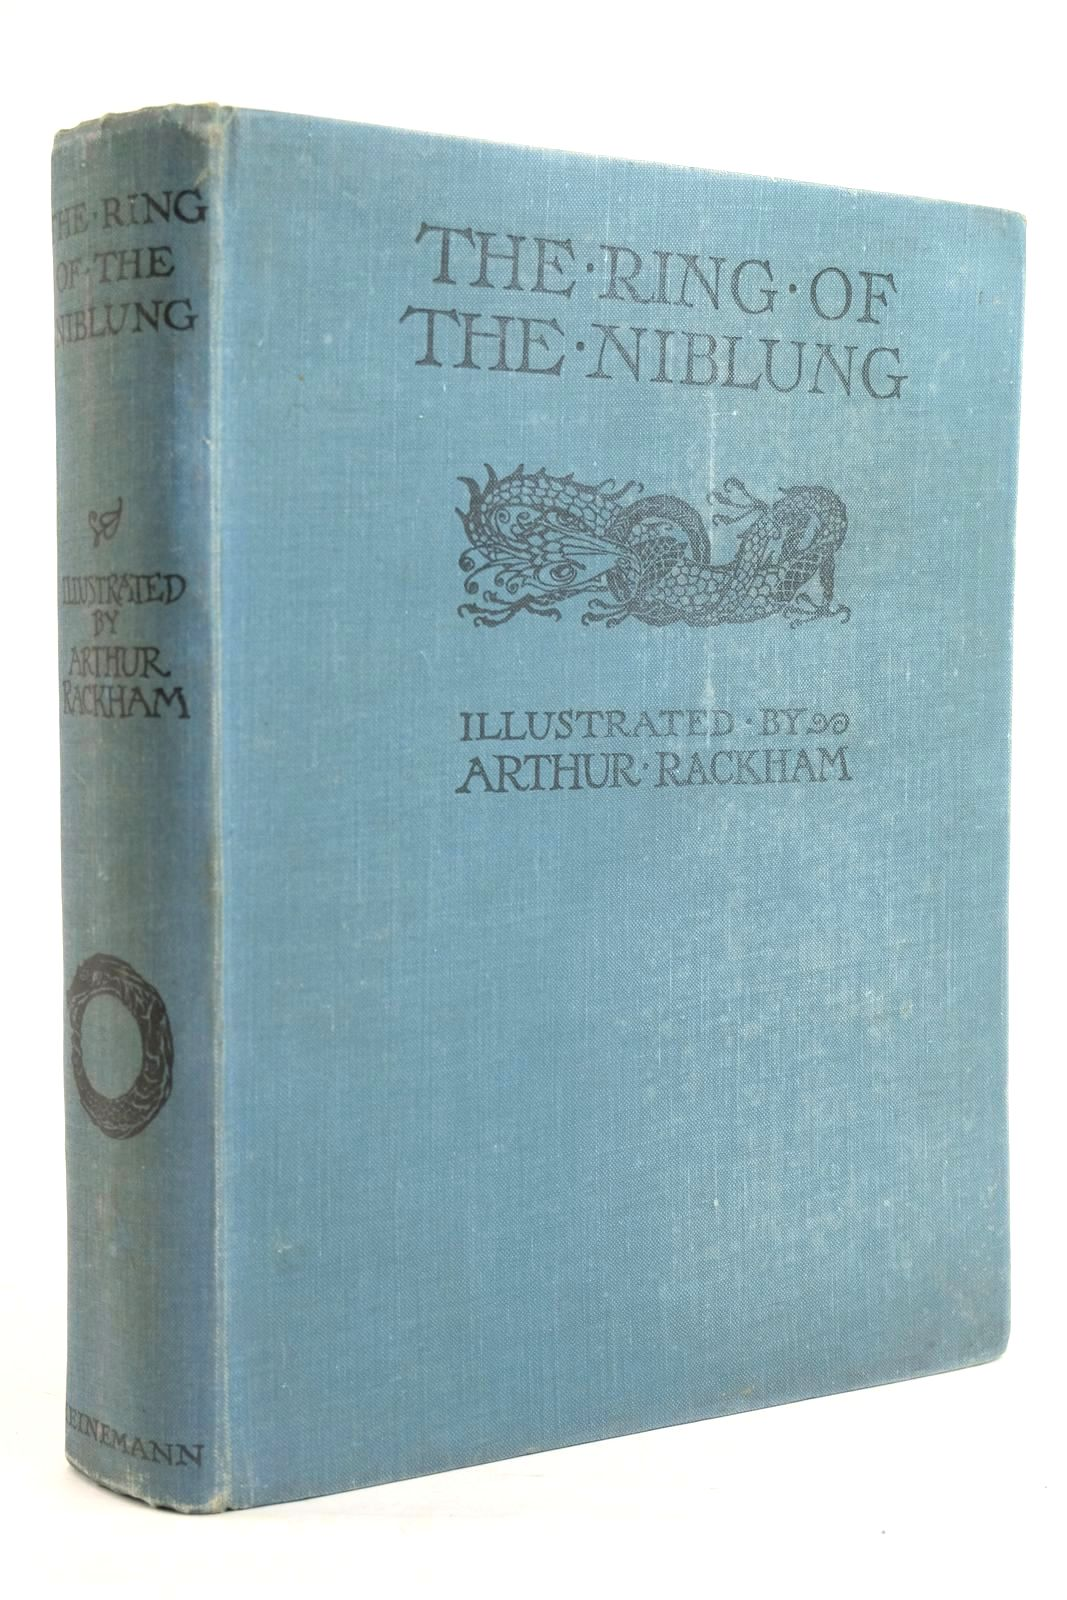 Photo of THE RING OF THE NIBLUNG written by Wagner, Richard illustrated by Rackham, Arthur published by William Heinemann Ltd. (STOCK CODE: 1320085)  for sale by Stella & Rose's Books